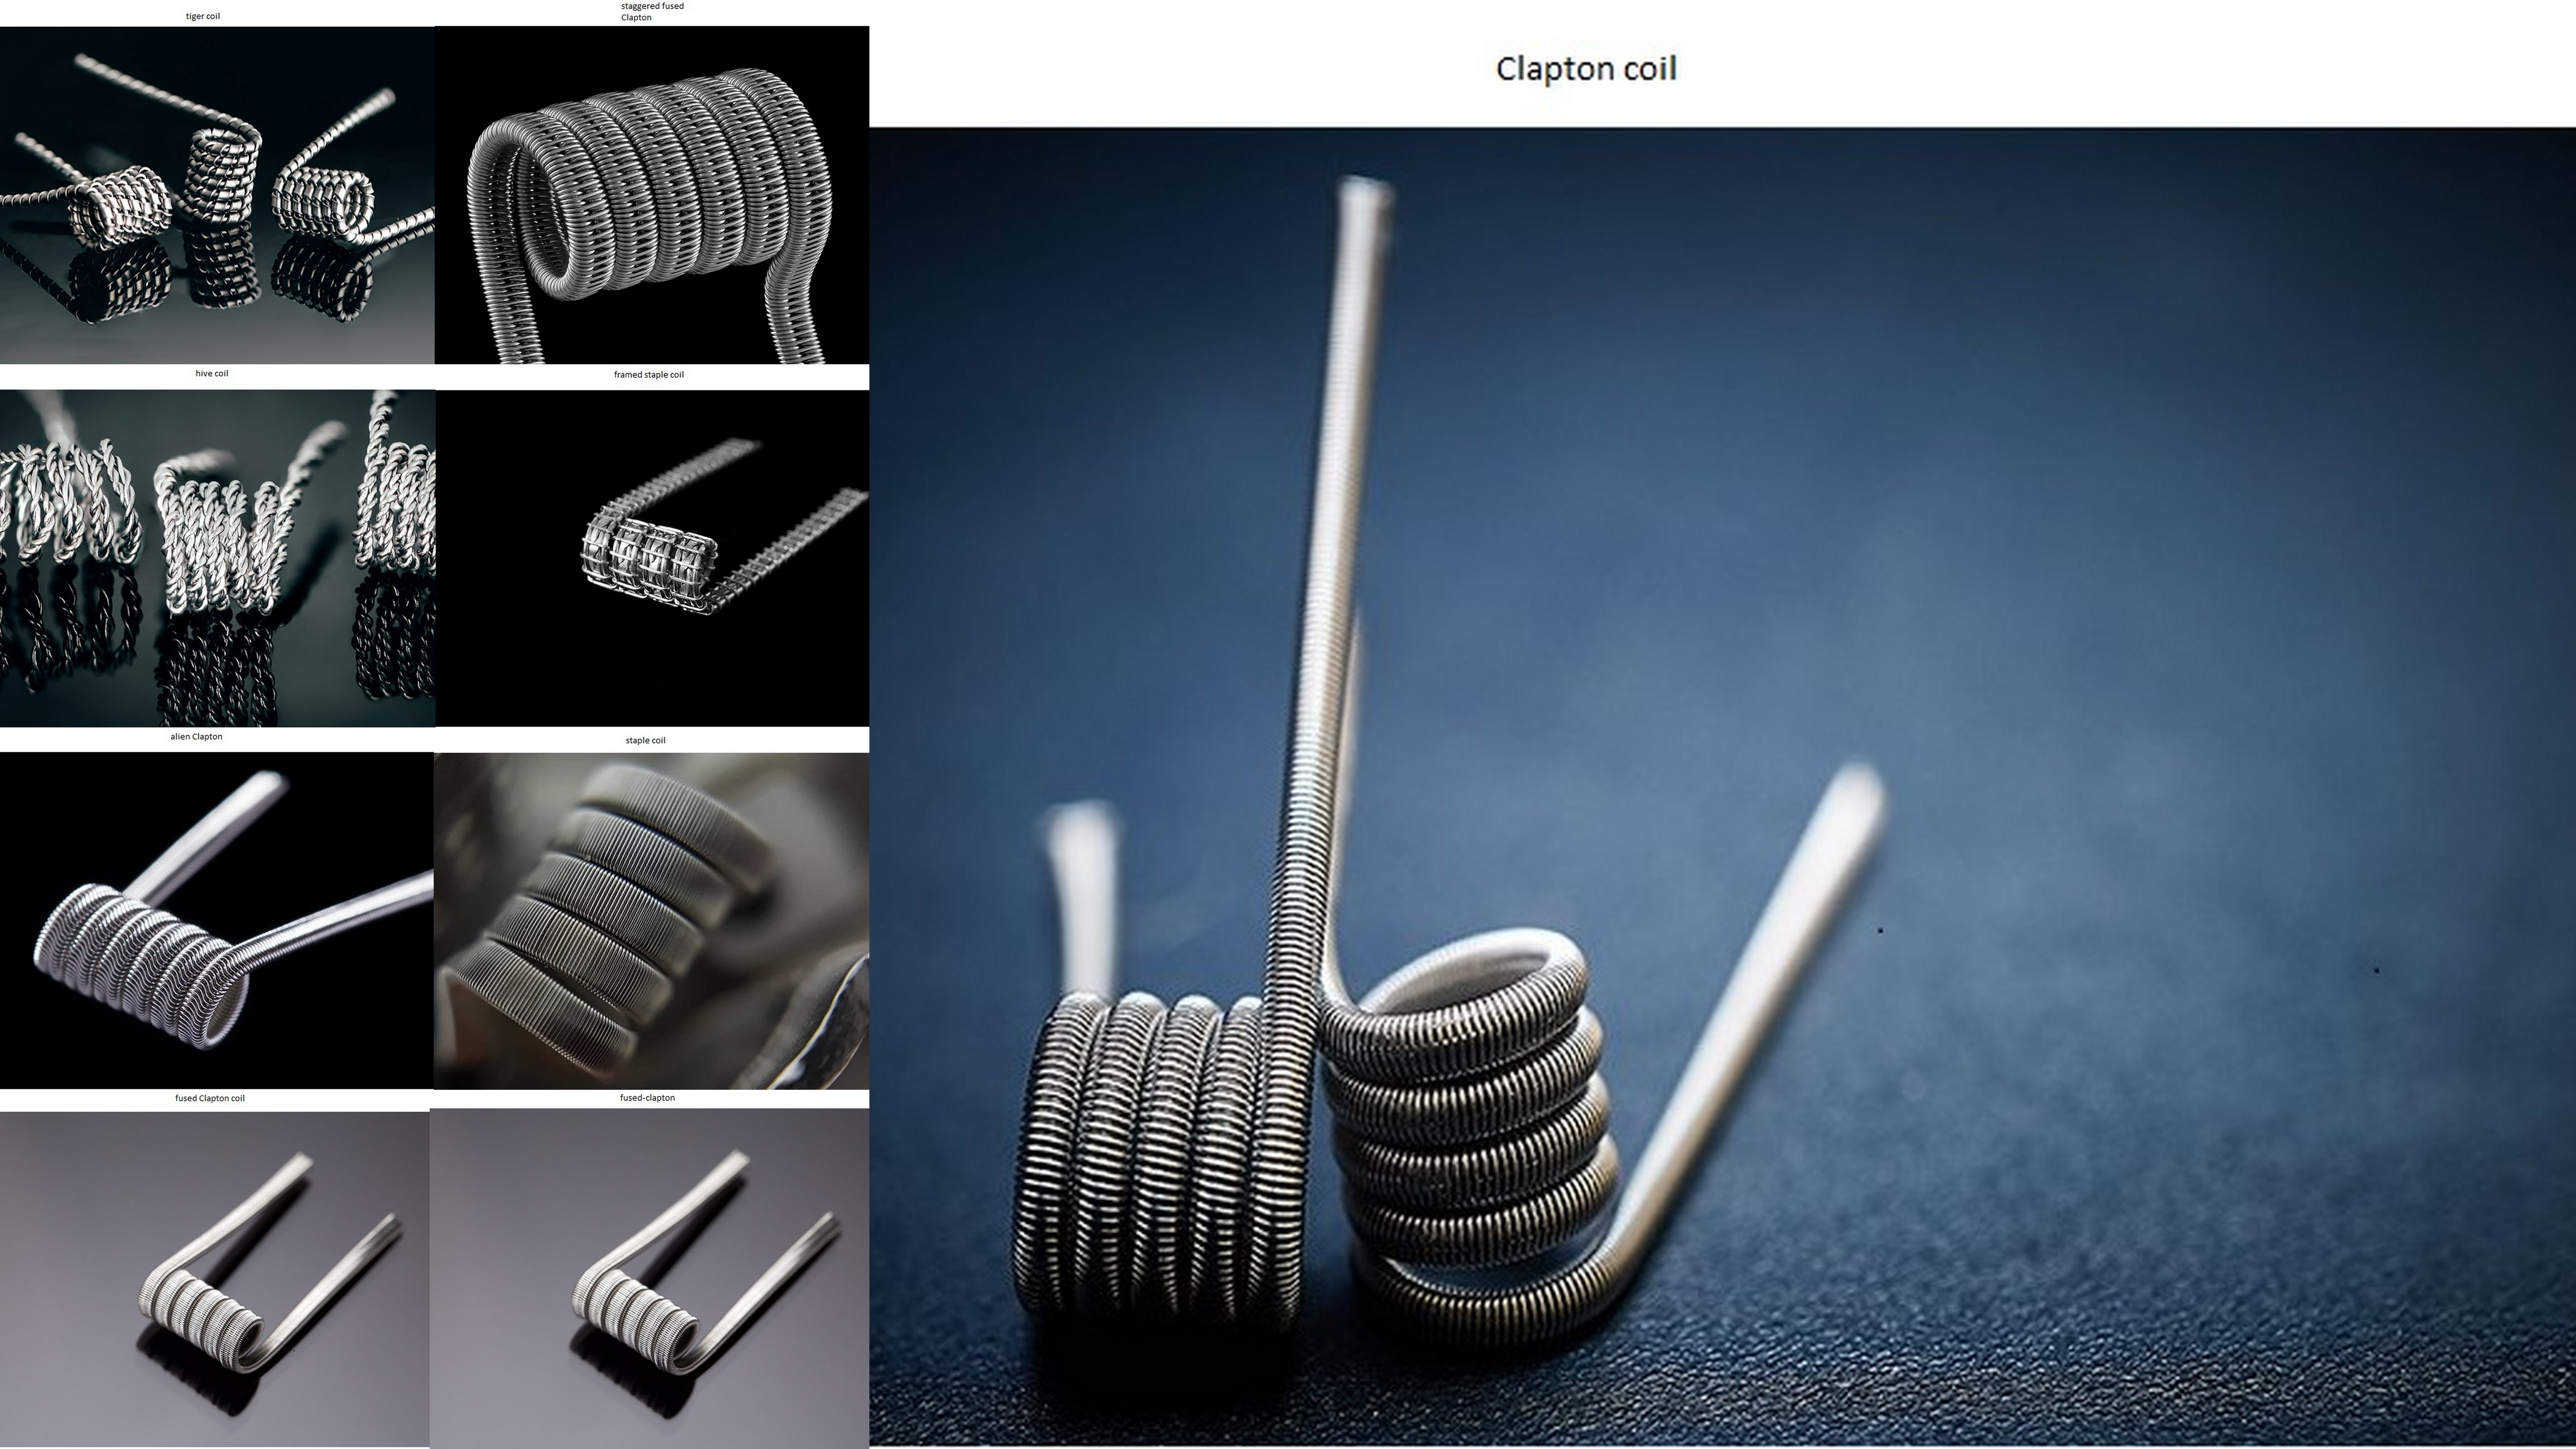 Tι ειναι το tiger coil,staple coil,staggered fused Clapton,hive coil,fused-clapton,fused Clapton coil,framed staple coil,Clapton coil.alien Clapton